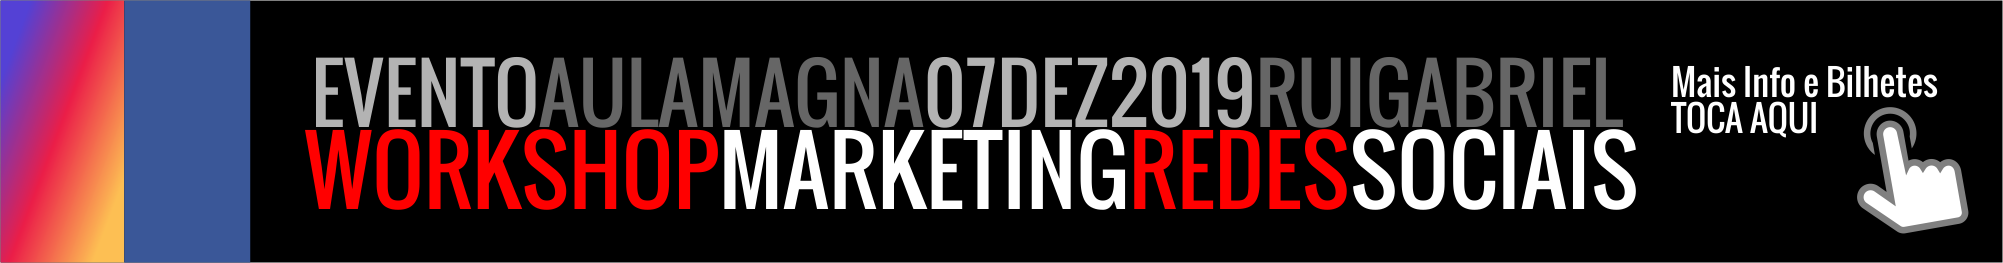 Workshop MARKETING REDES SOCIAIS